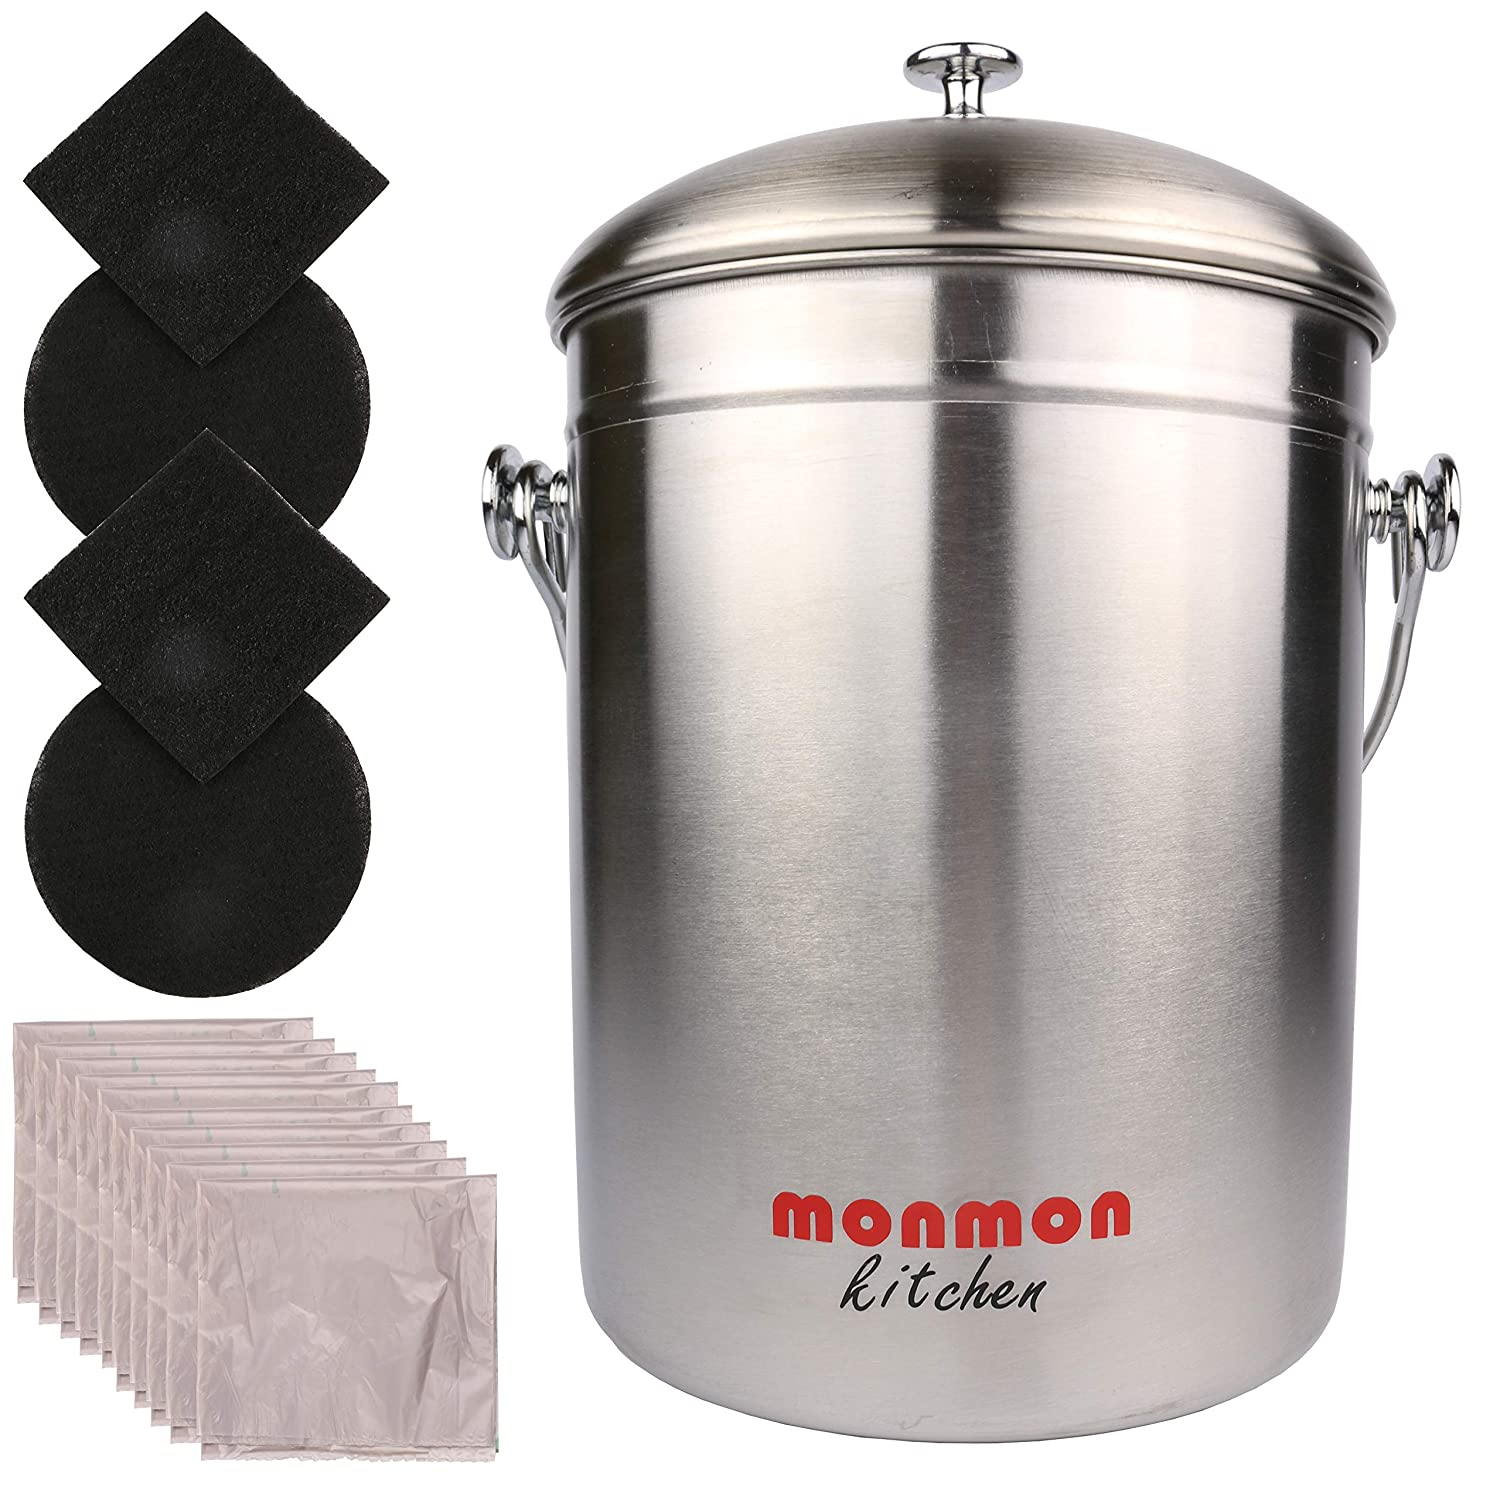 Stainless Steel Compost Bin with Bonus 4 Charcoal Filters and 10 Compost Bags MonMon